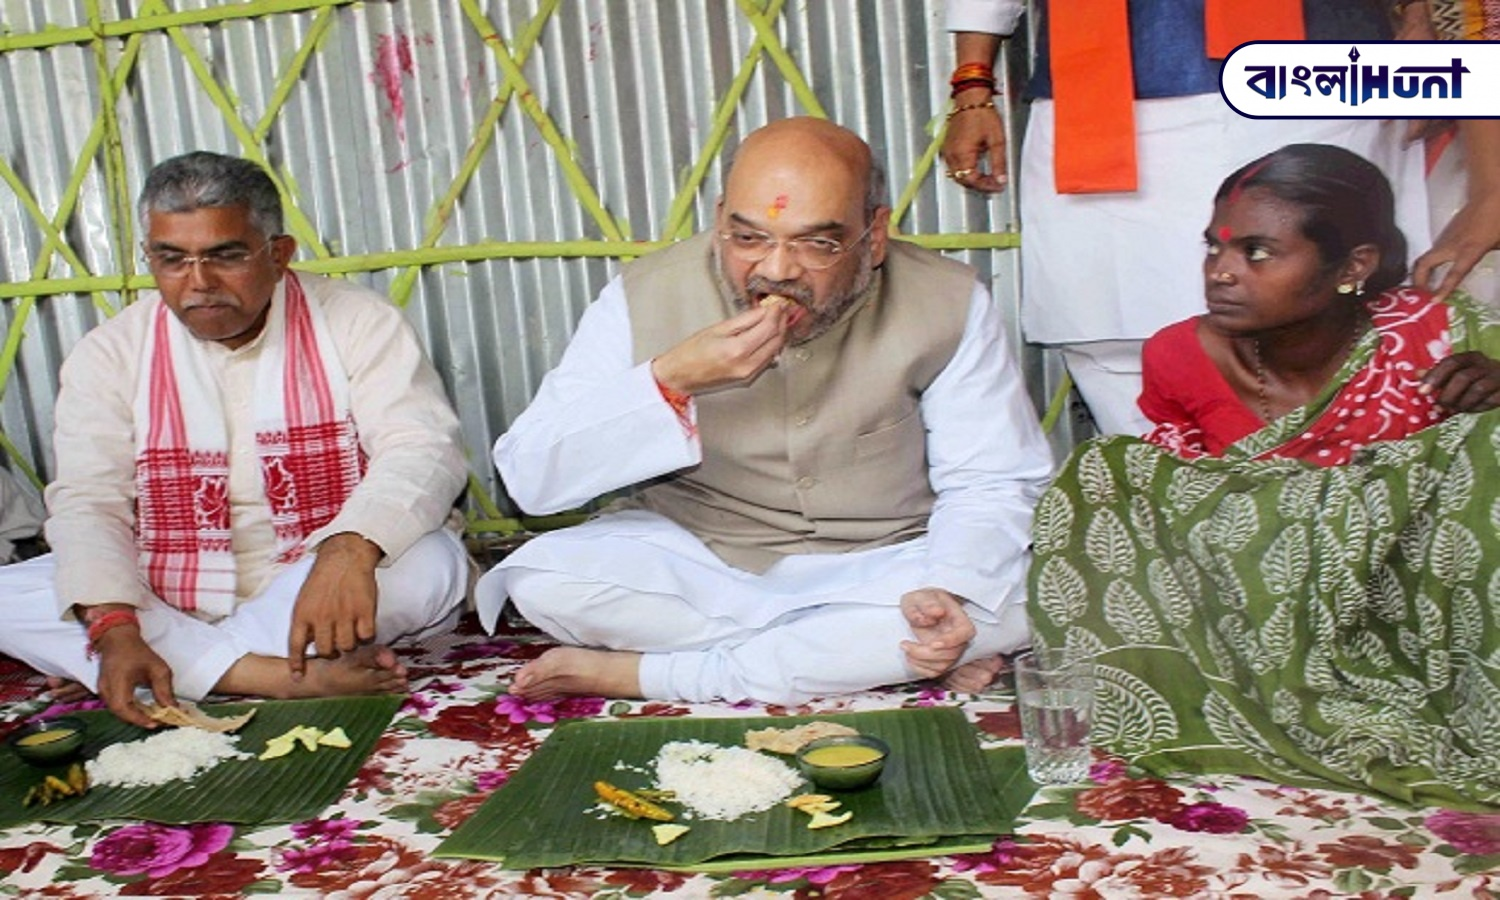 Gita Mahali got a job in the state government on the day of Amit Shah's visit